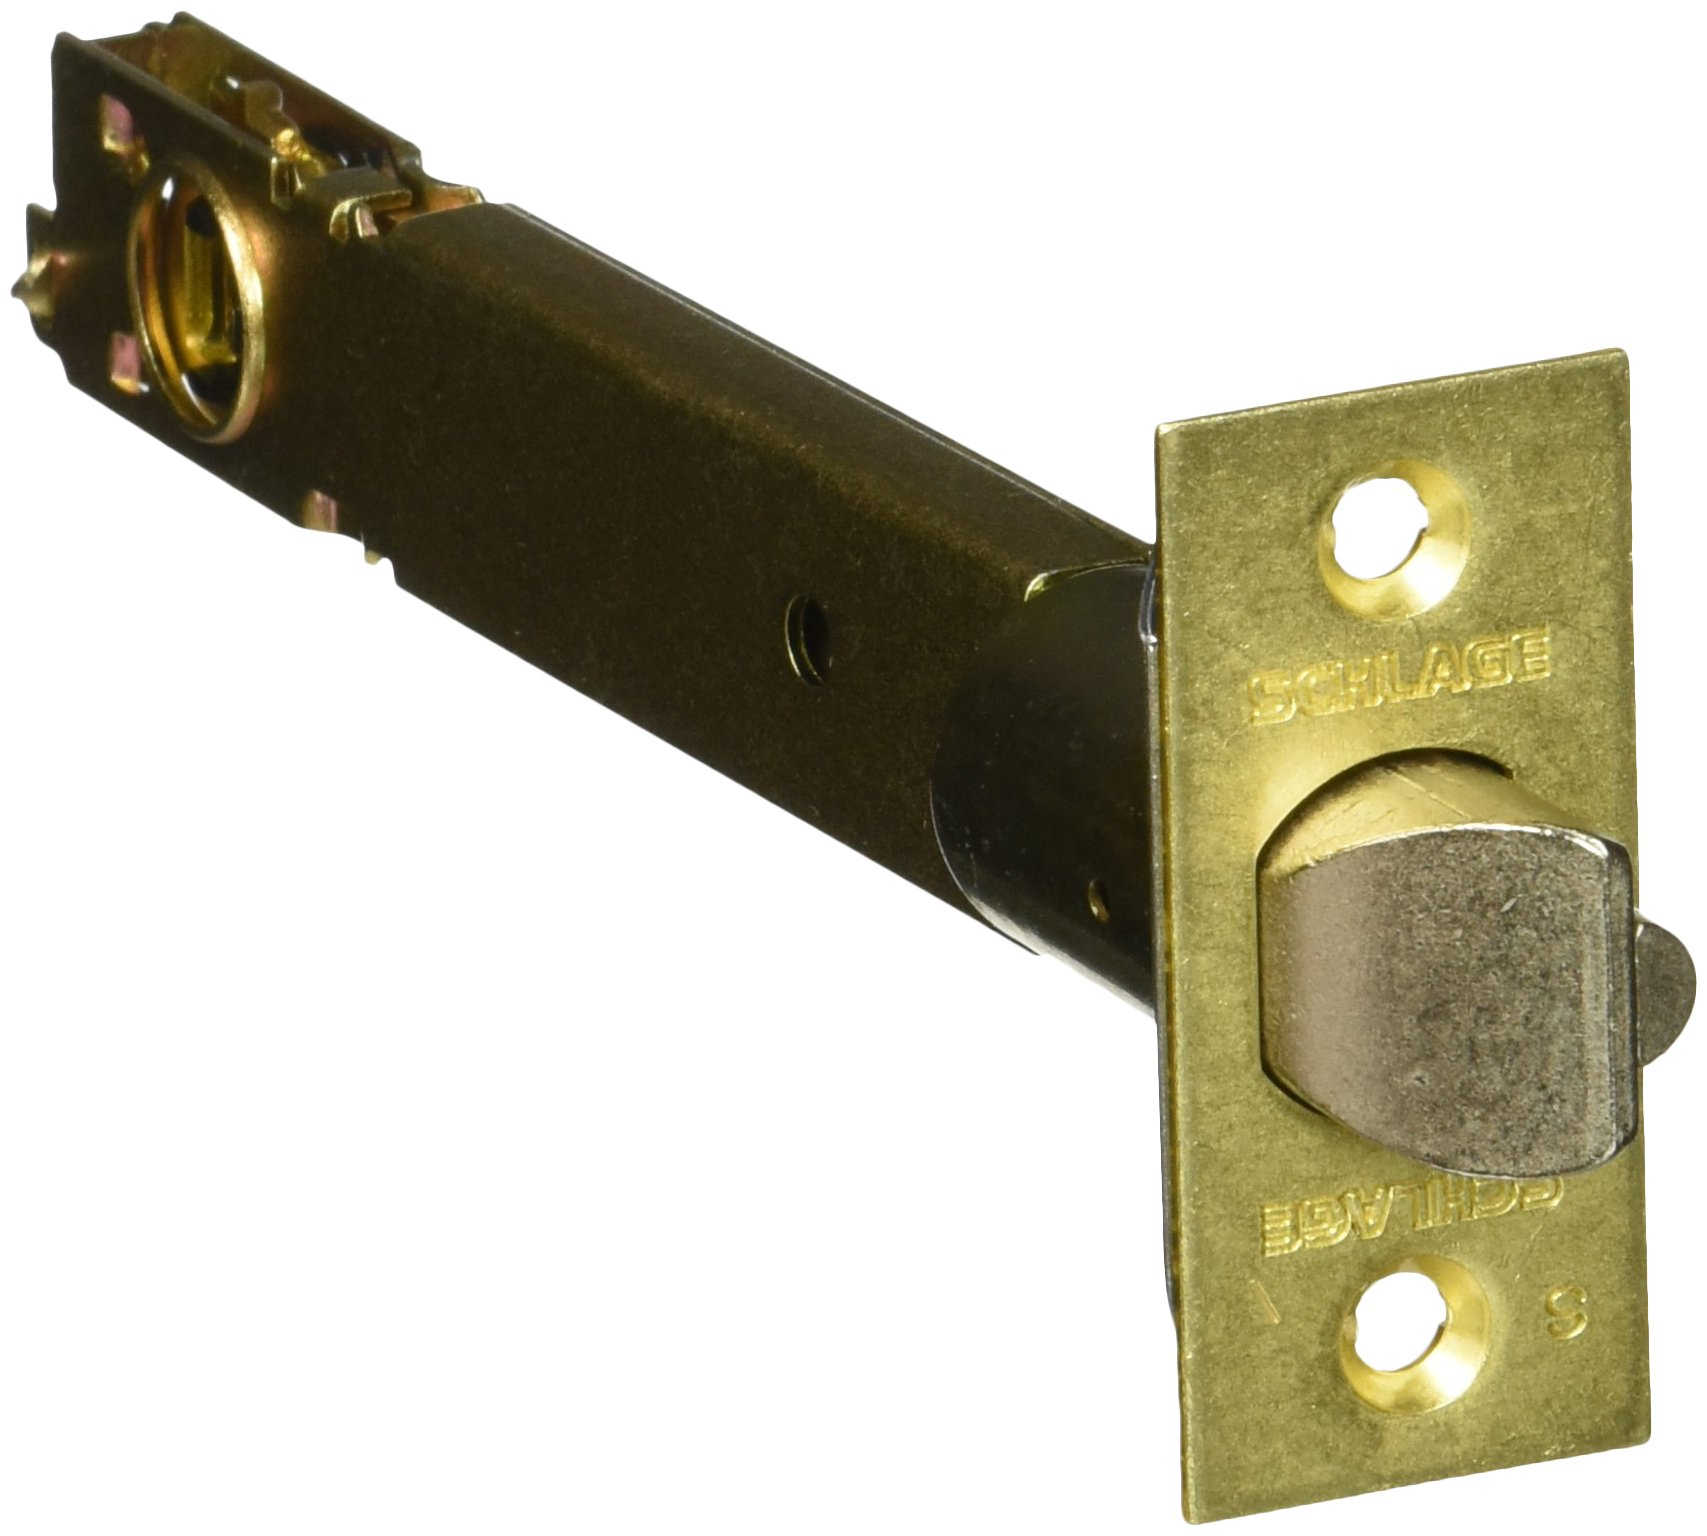 Schlage 16-126 Square Corner Dead Latch product image  sc 1 st  Amazon.com & Best Rated in Door Lock Replacement Parts u0026 Helpful Customer Reviews ...